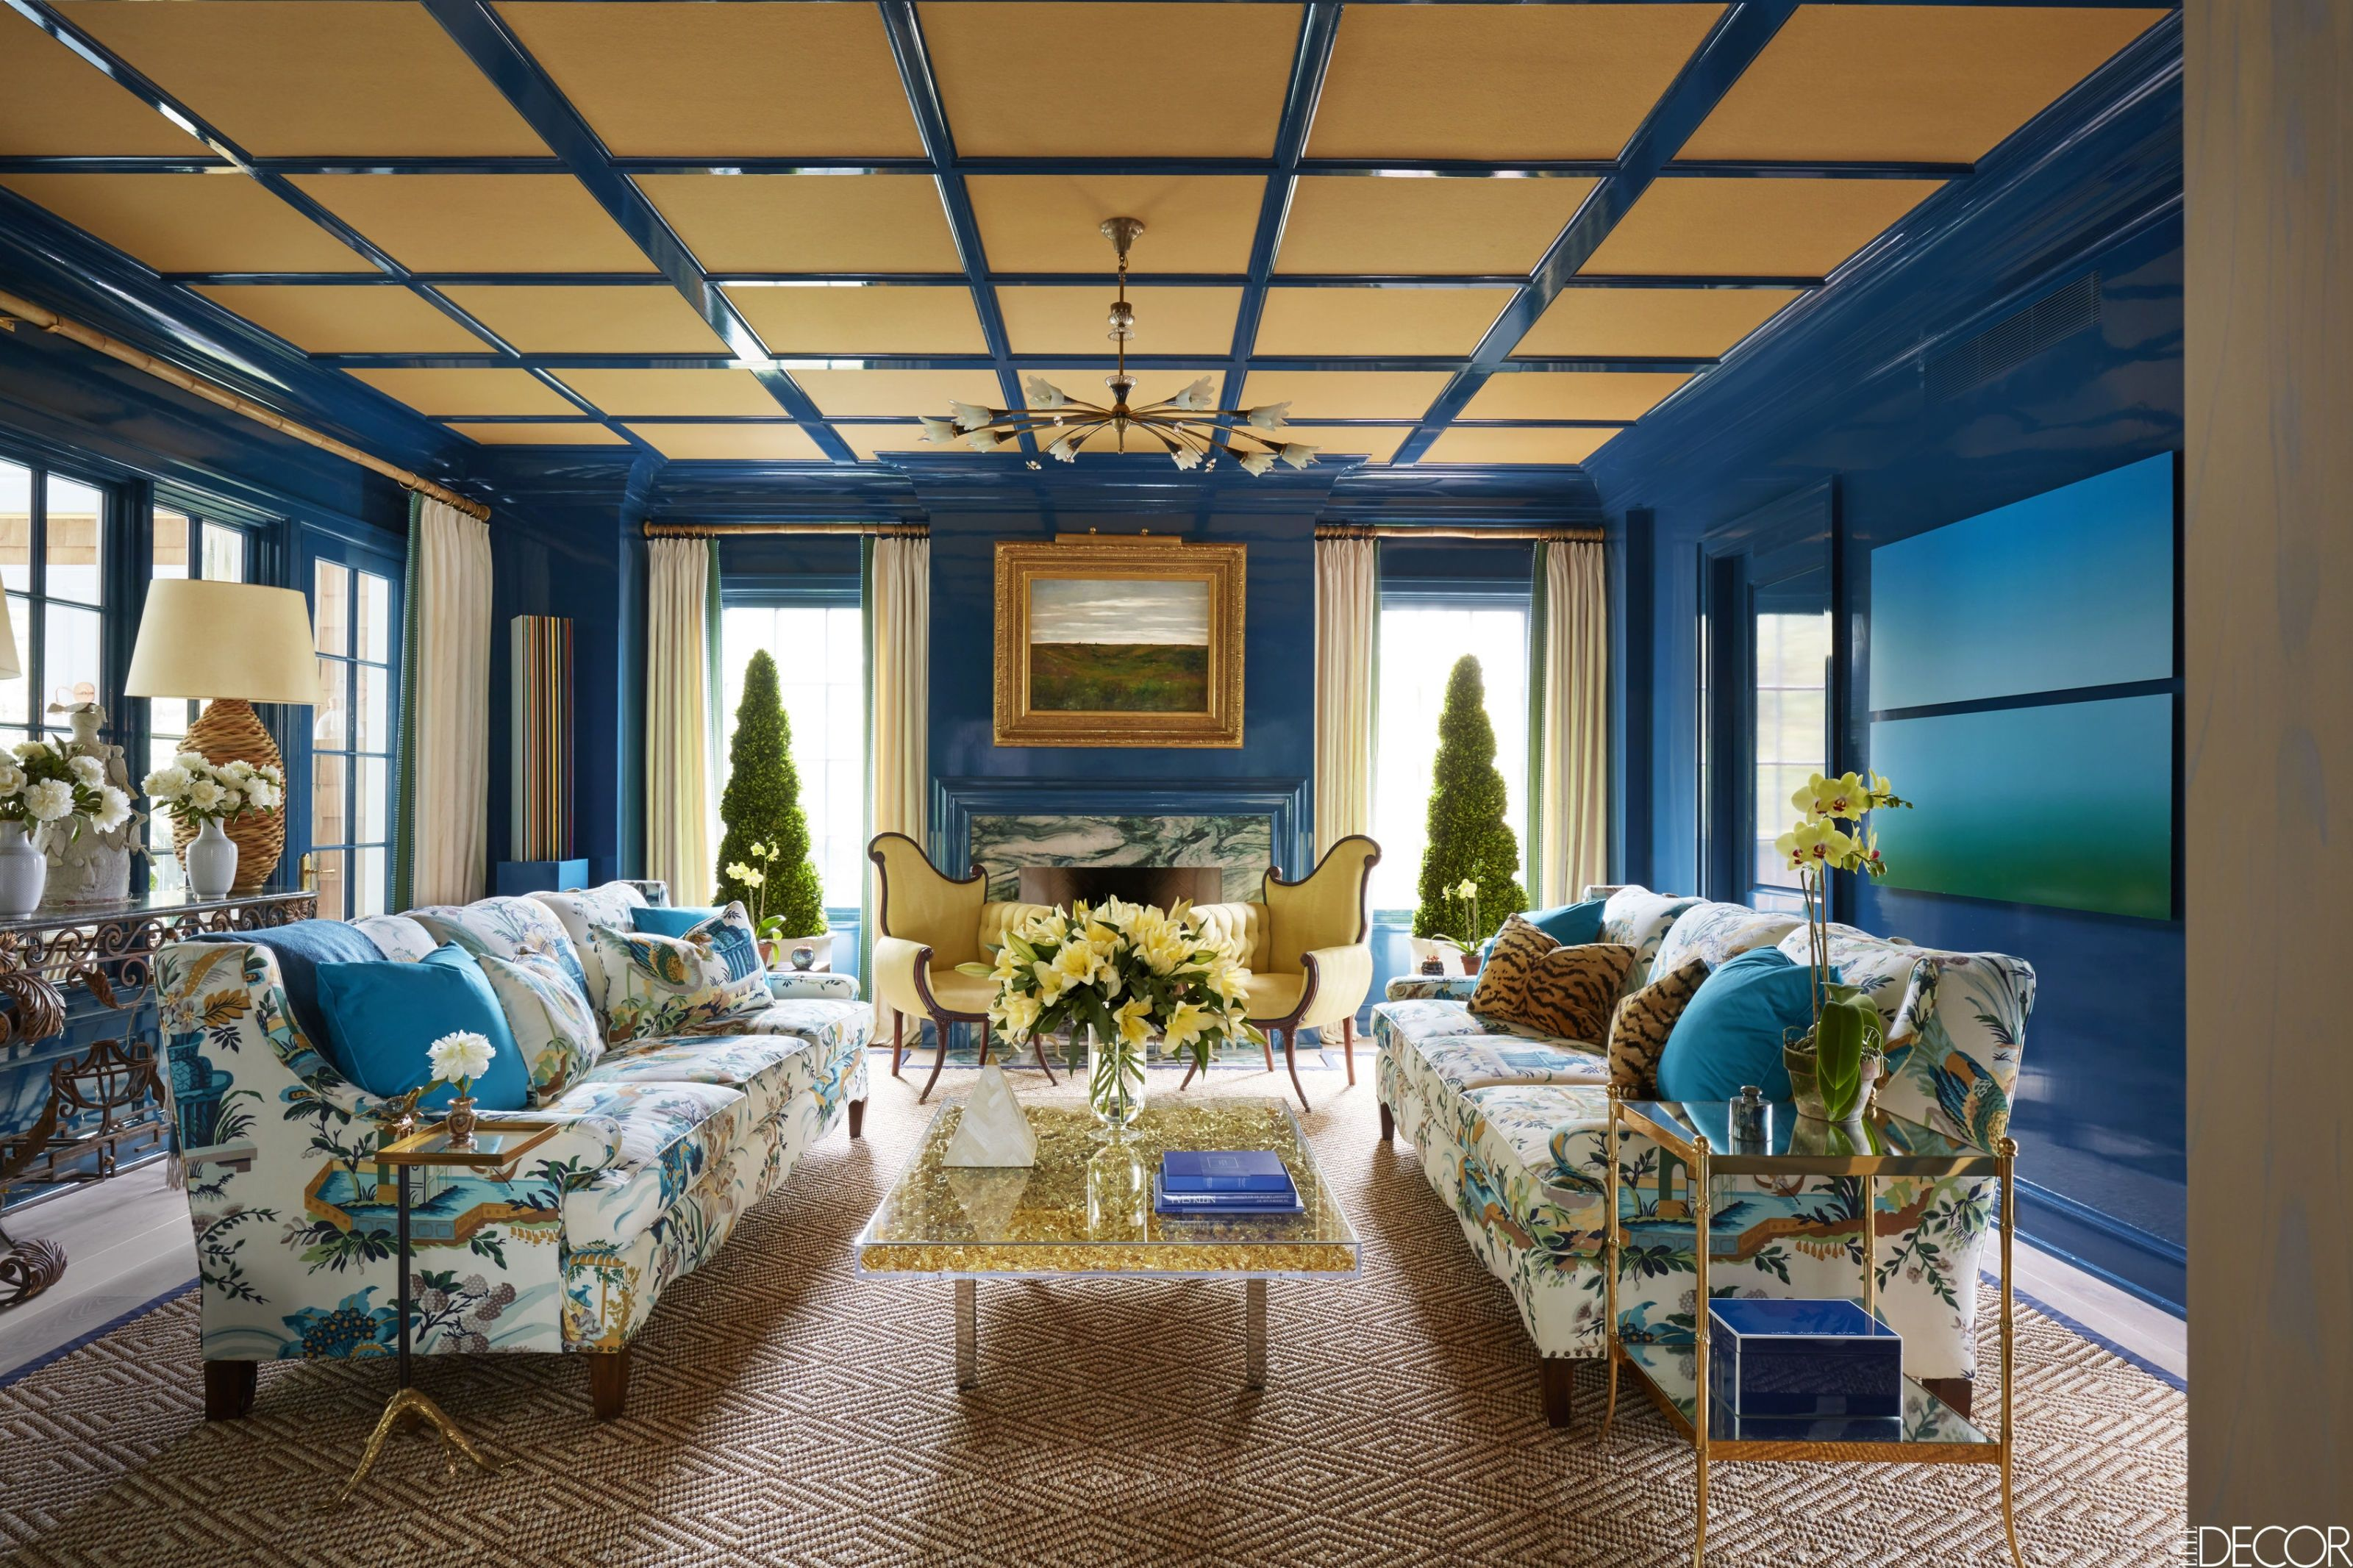 20 Best Ceiling Ideas And Decorations For A Beautiful Room